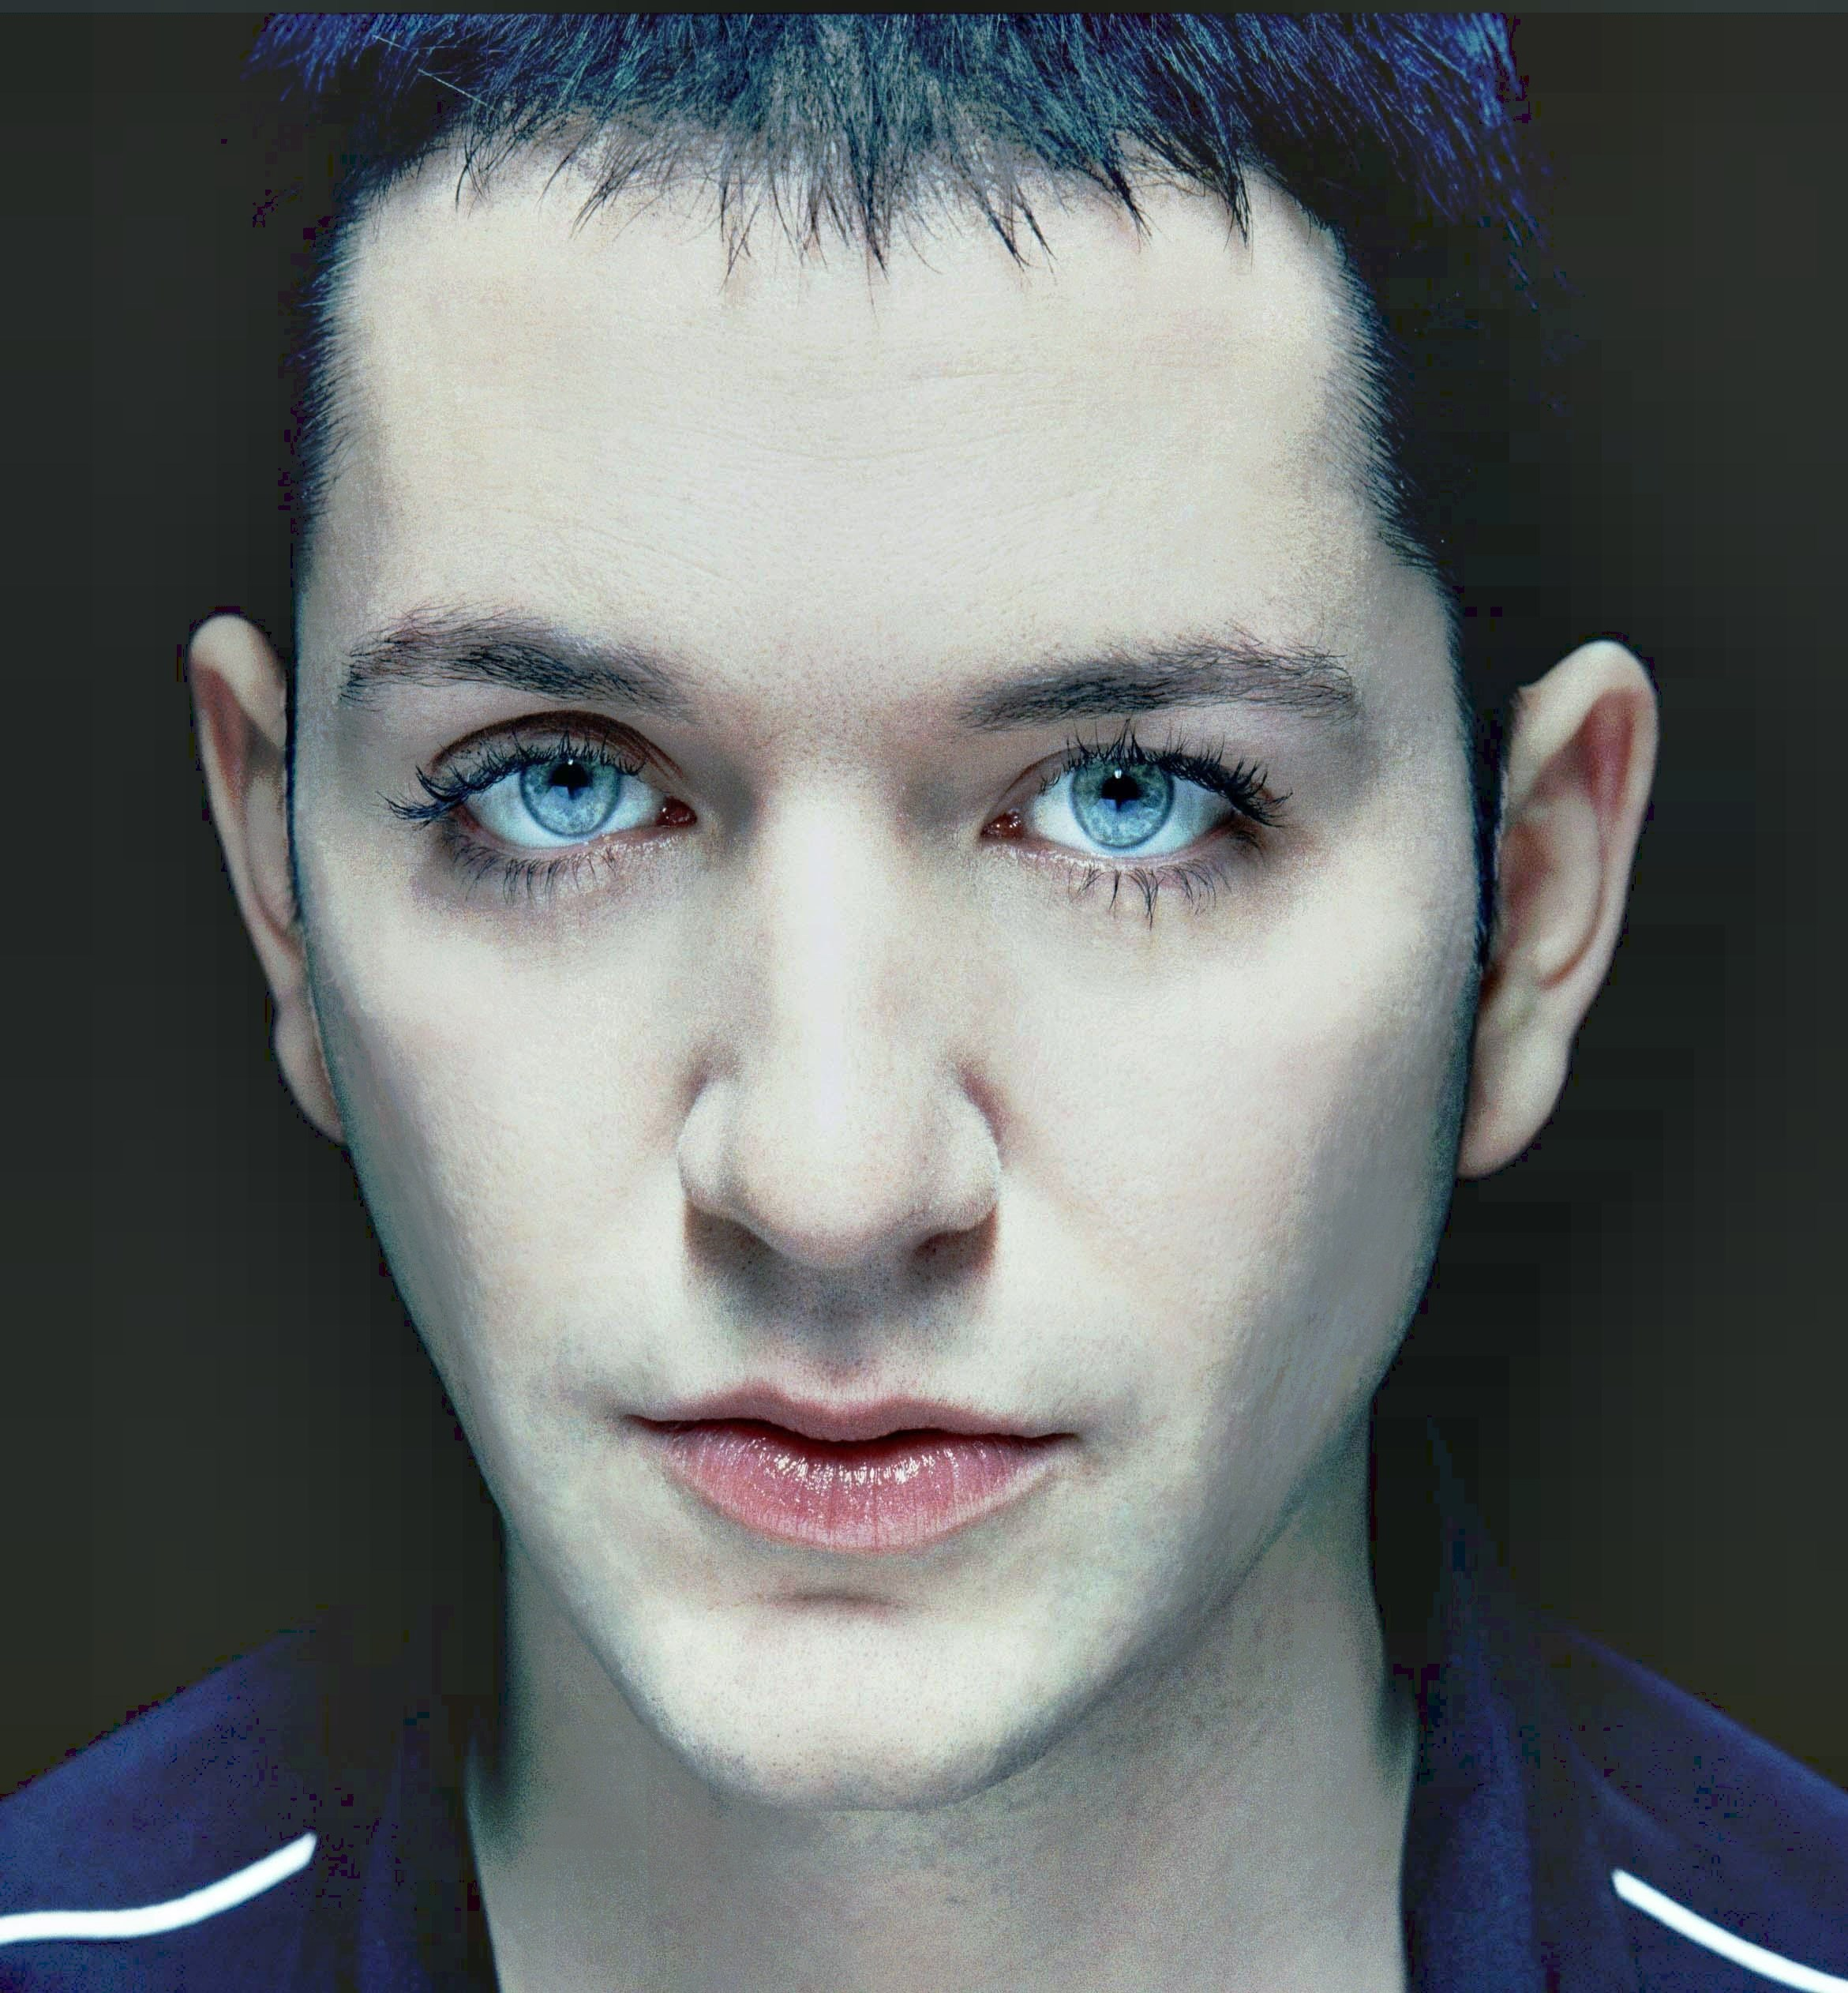 Brian Molko | Known people - famous people news and